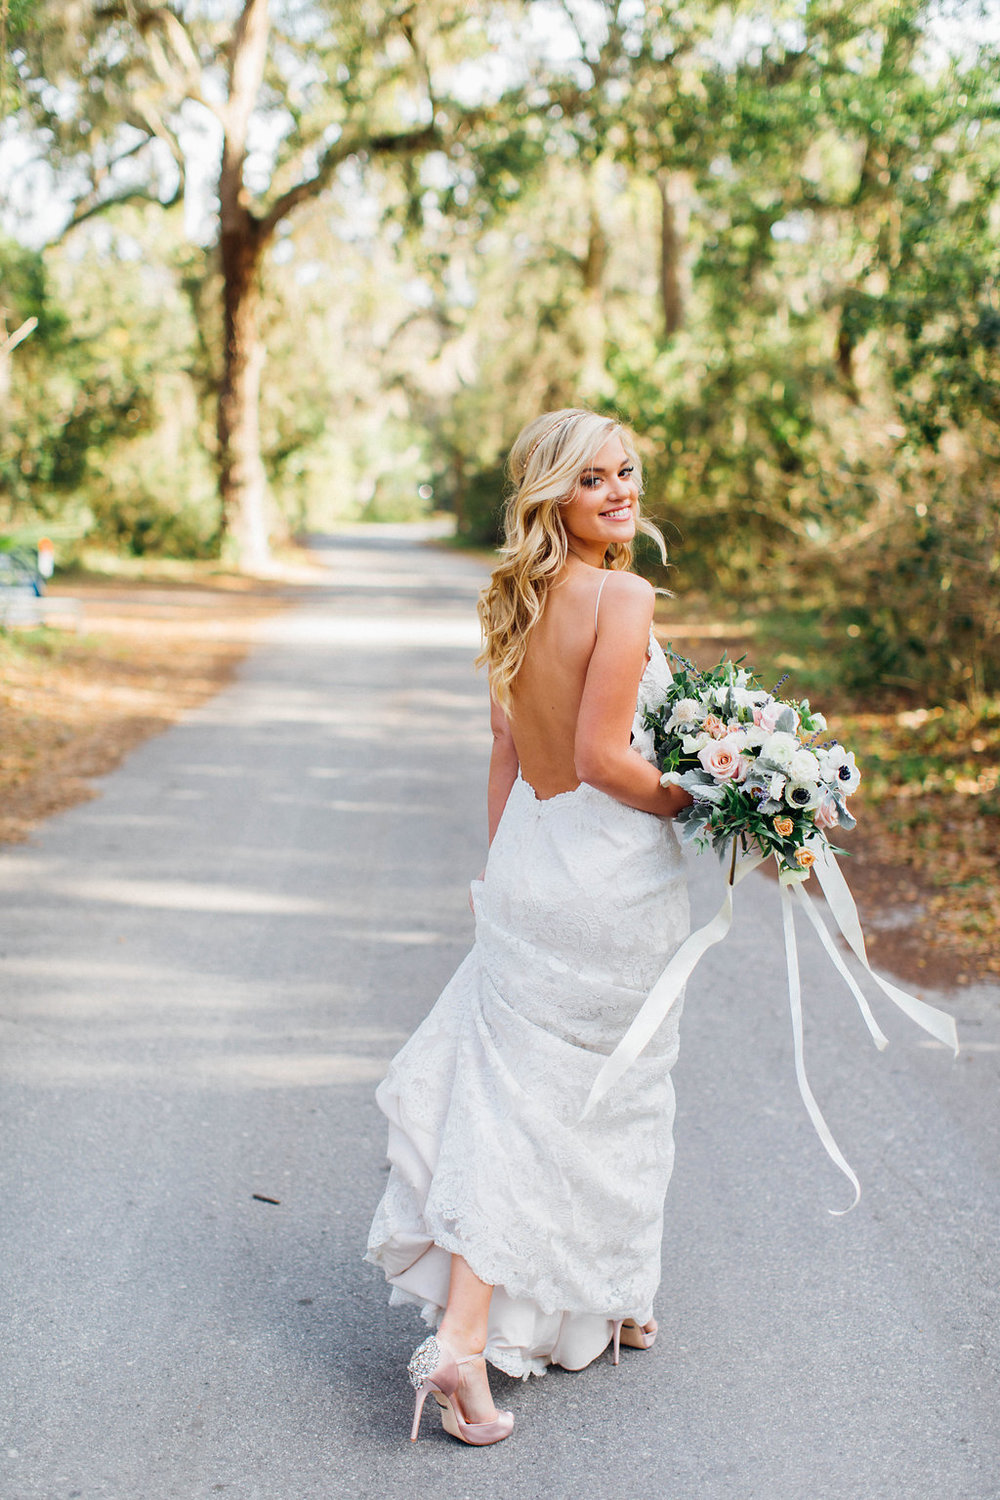 ivory-and-beau-bridal-boutique-christina-karst-photography-the-ribault-club-jacksonville-florida-wedding-jacksonville-wedding-planner-7.jpg